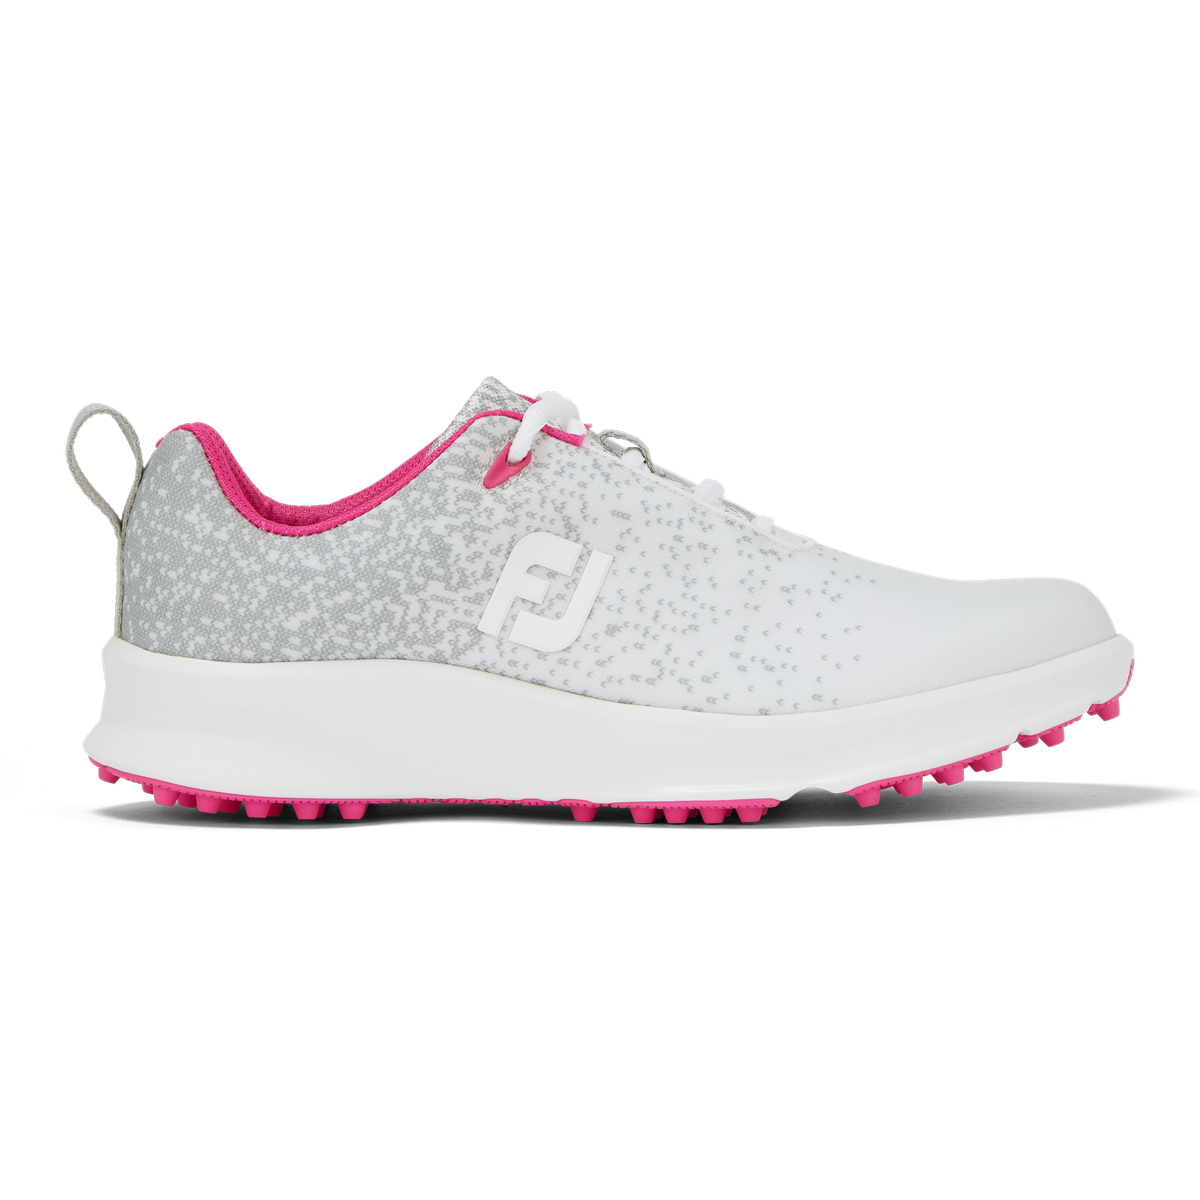 FJ Leisure Women